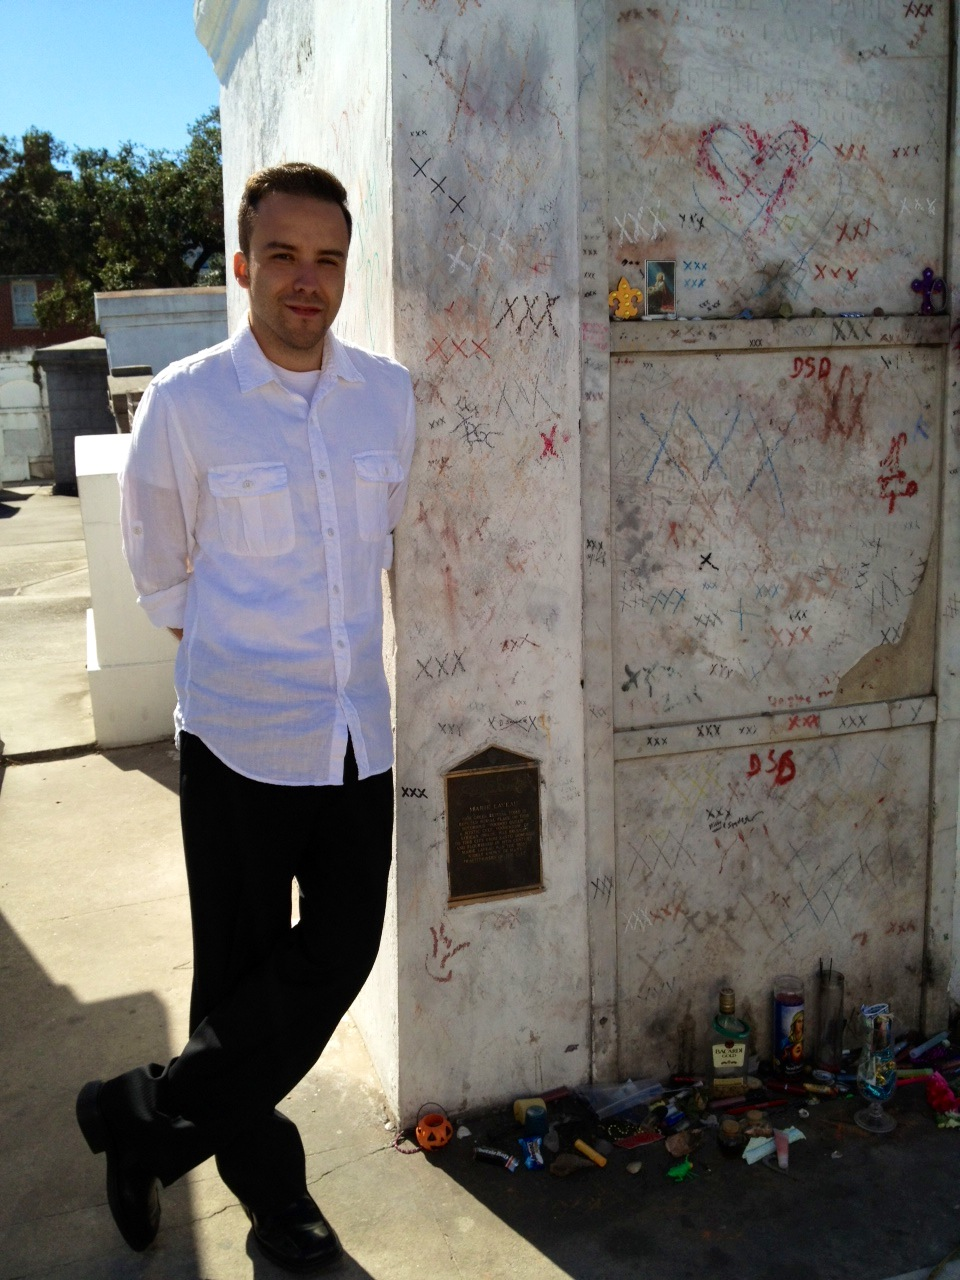 Standing next to Marie Laveau